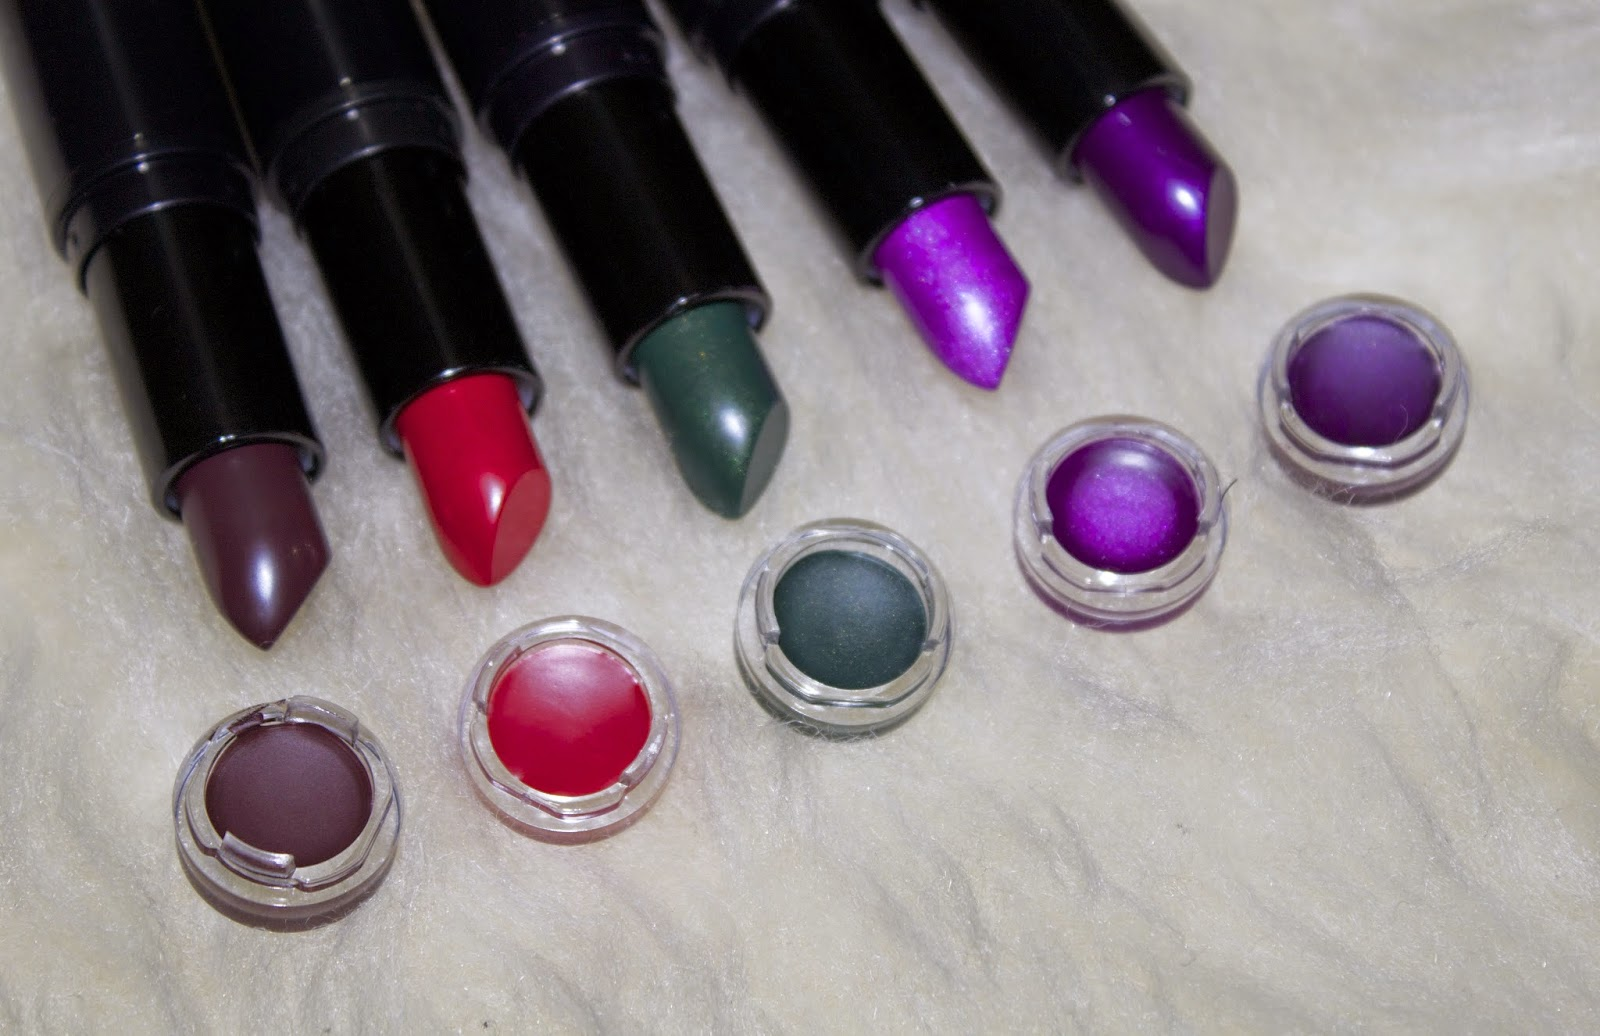 A picture of the Makeup Revolution Atomic lipsticks